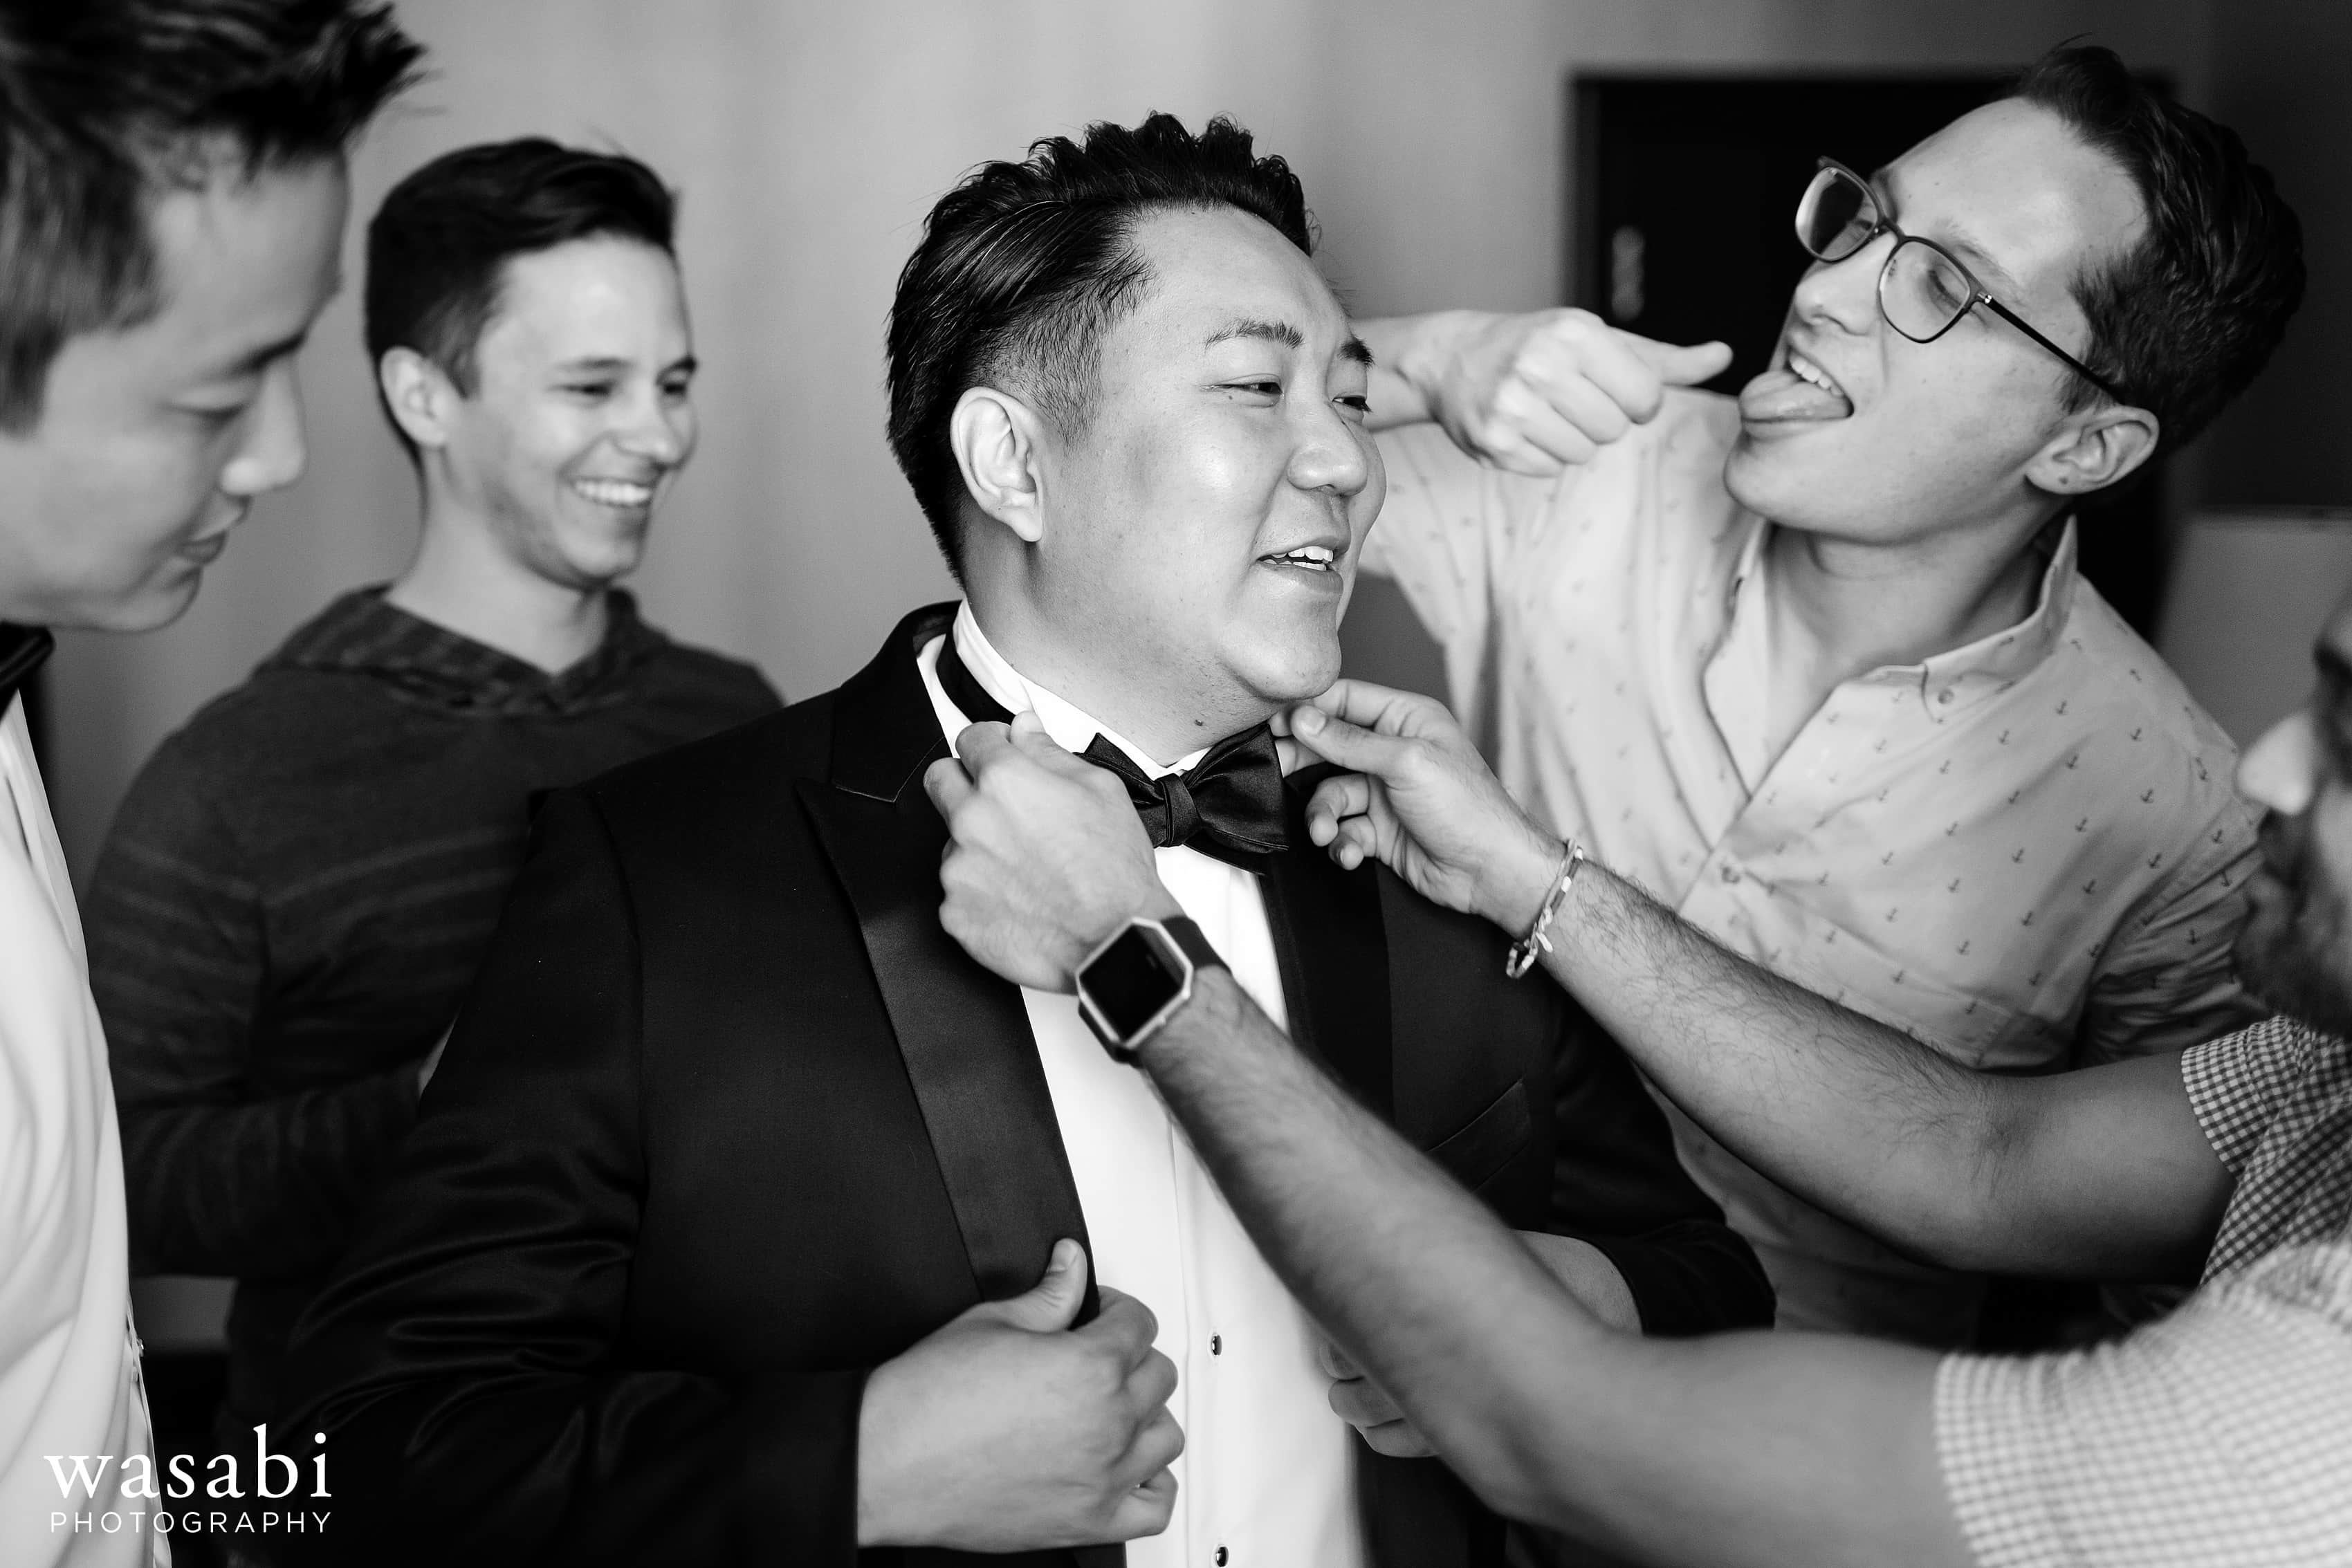 groomsmen help groom adjust bowtie while getting ready for wedding